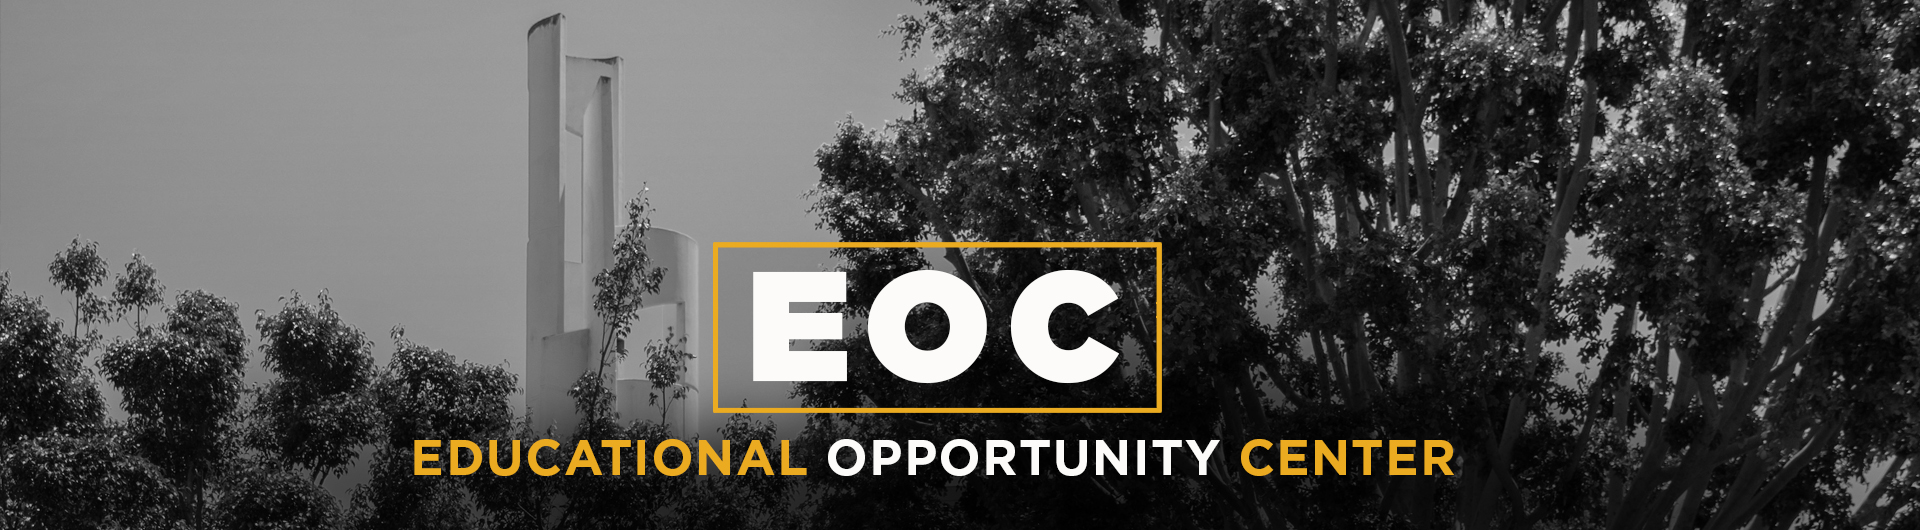 EDUCATIONAL OPPORTUNITY CENTER banner